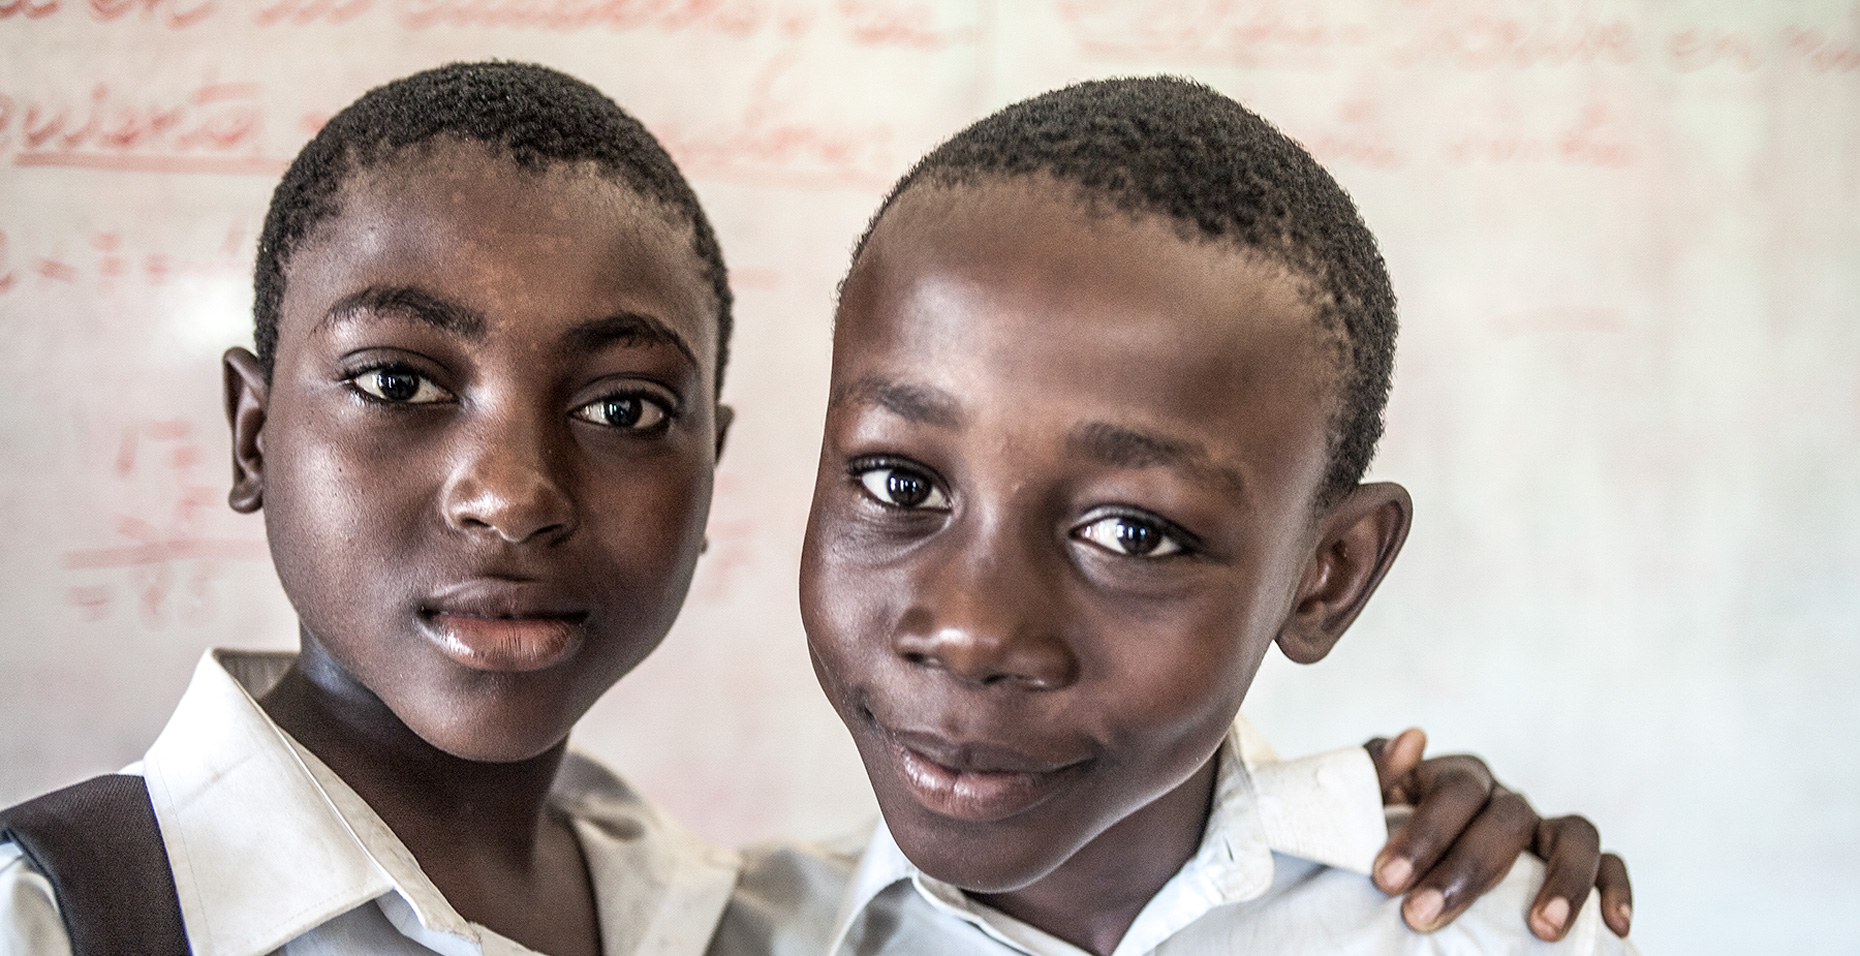 Students attend school in Bata, Equatorial Guinea, West Africa. Shot on assignment for Inc Design.